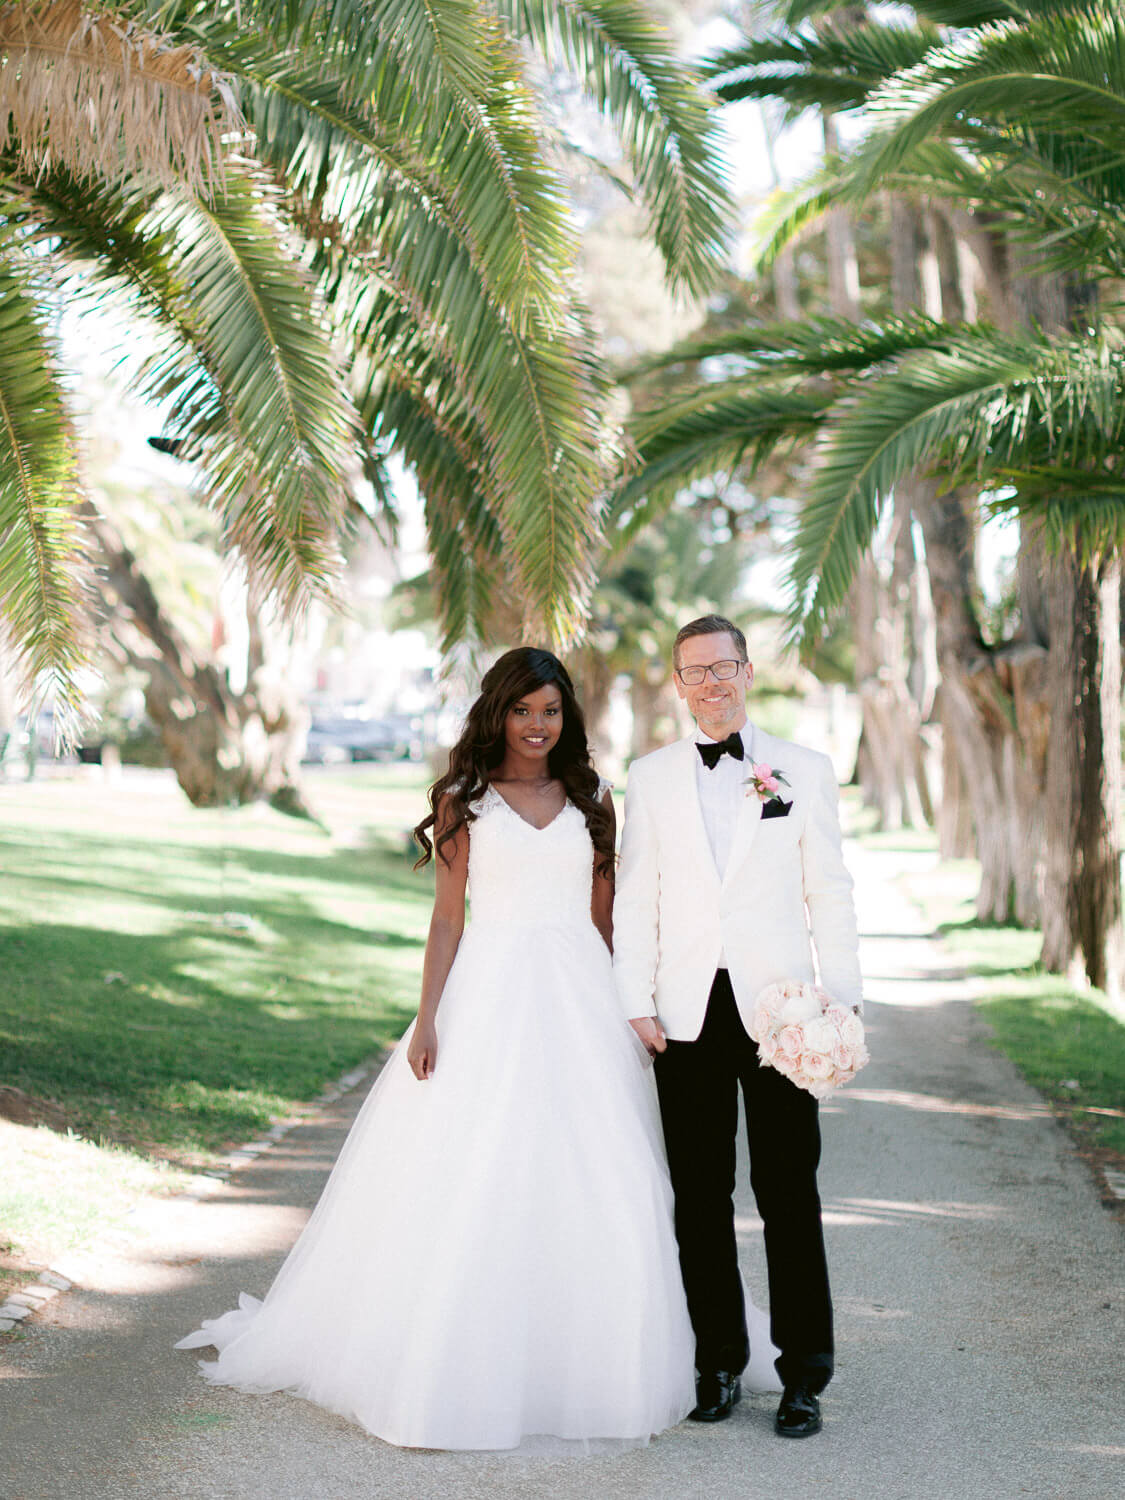 Bride and Groom sweet wedding portrait by Portugal Wedding Photographer